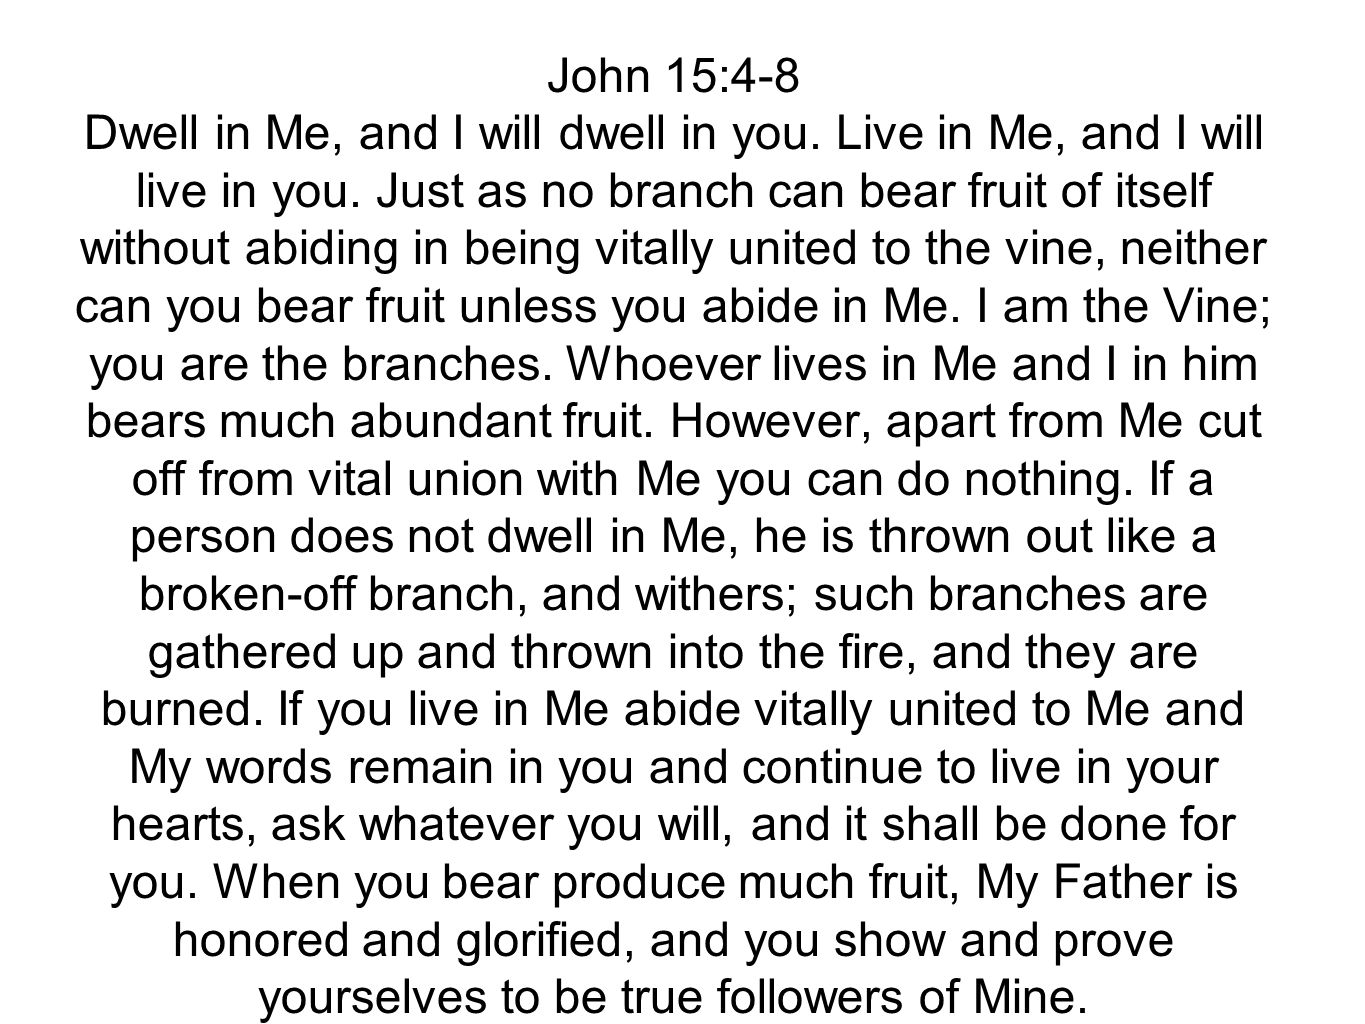 John 15:4-8 Dwell in Me, and I will dwell in you. Live in Me, and I will live in you. Just as no branch can bear fruit of itself without abiding in be